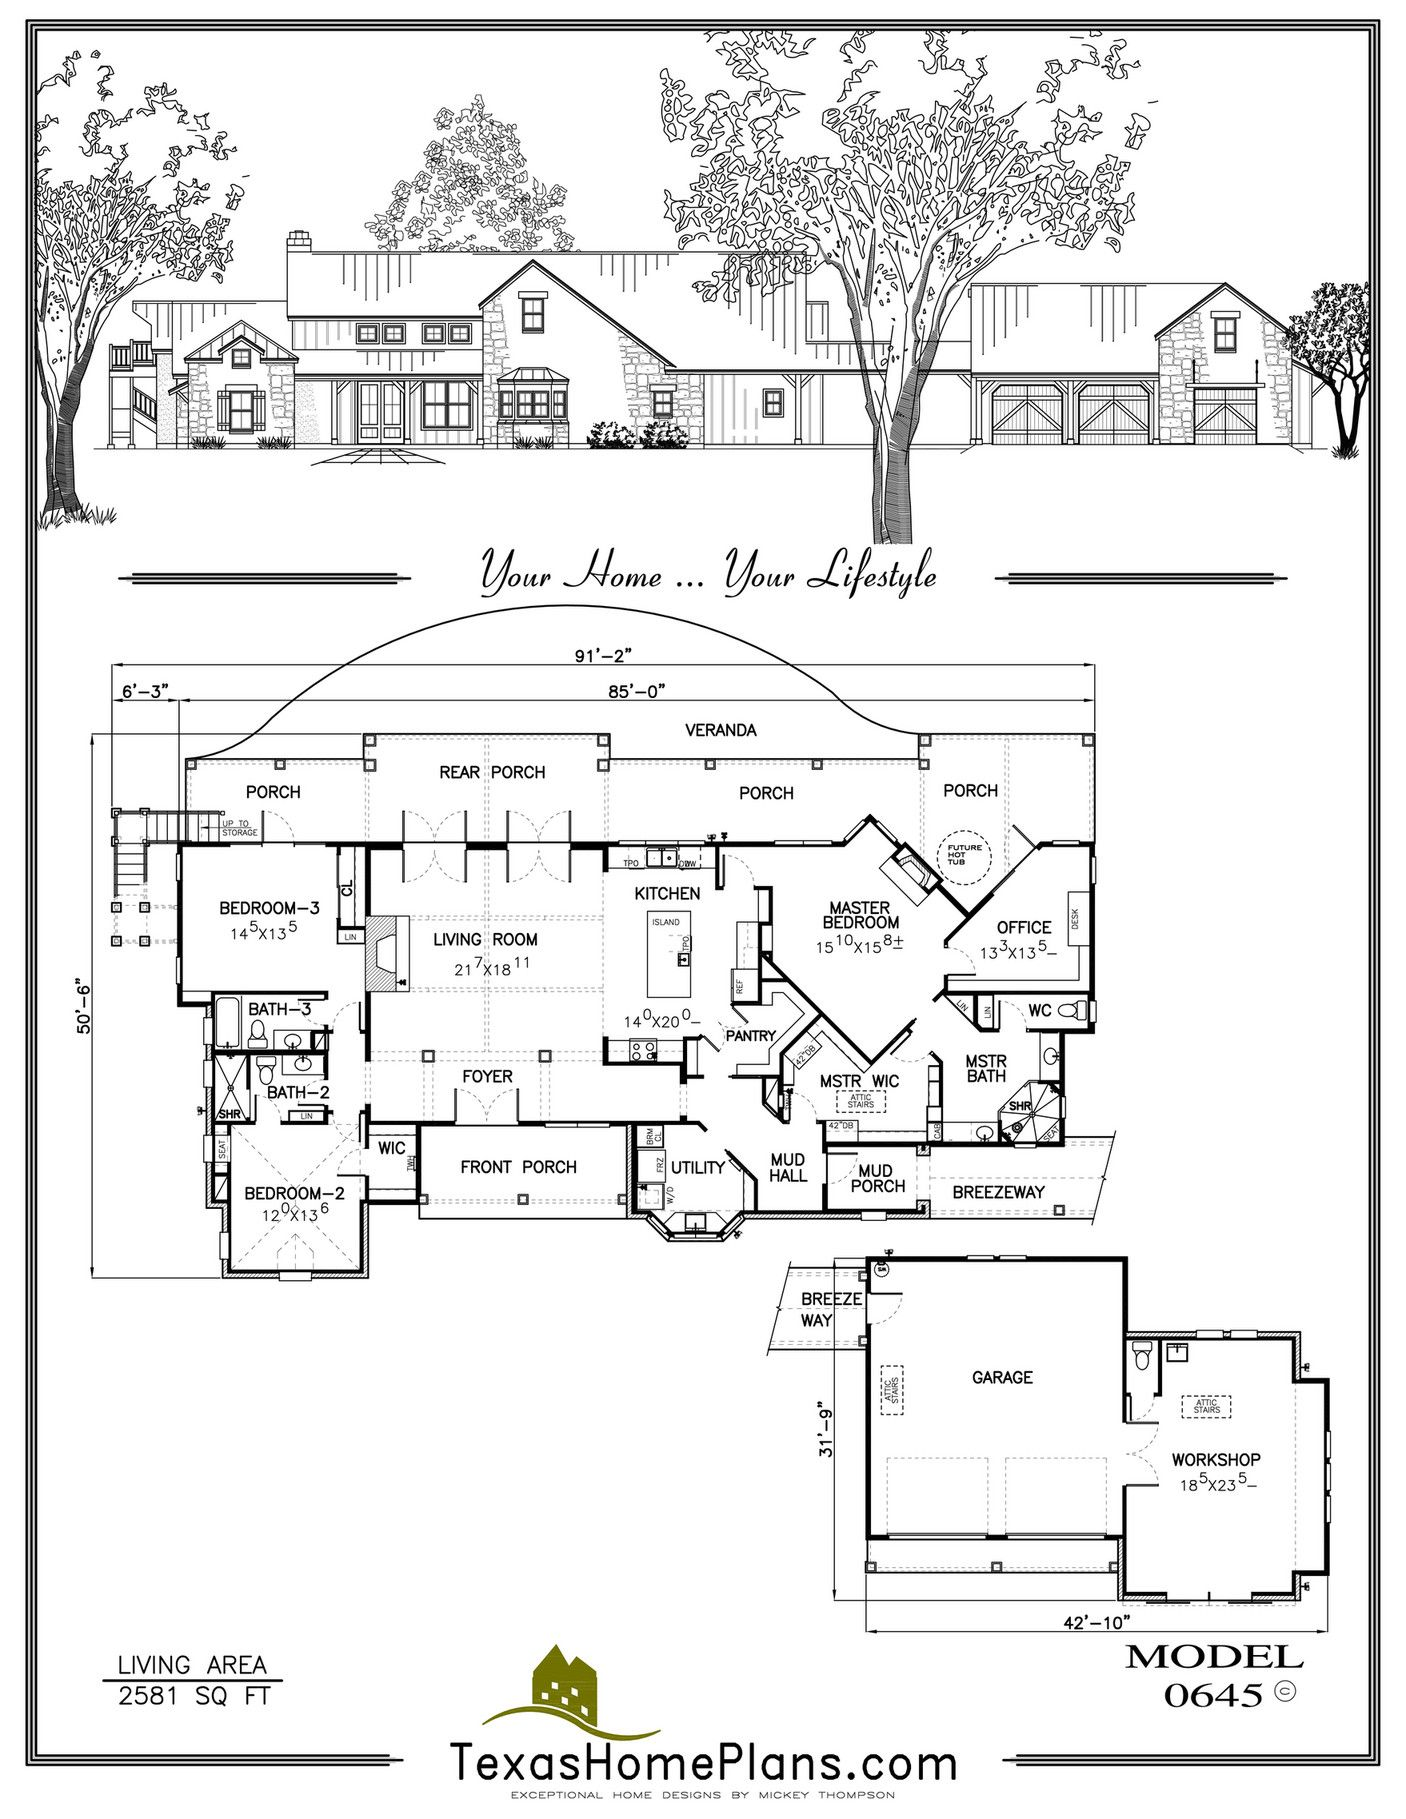 Texas Home Plans Texas German Homes Page 24 25 Texas Hill Country House Plans Ranch Style Floor Plans Texas House Plans